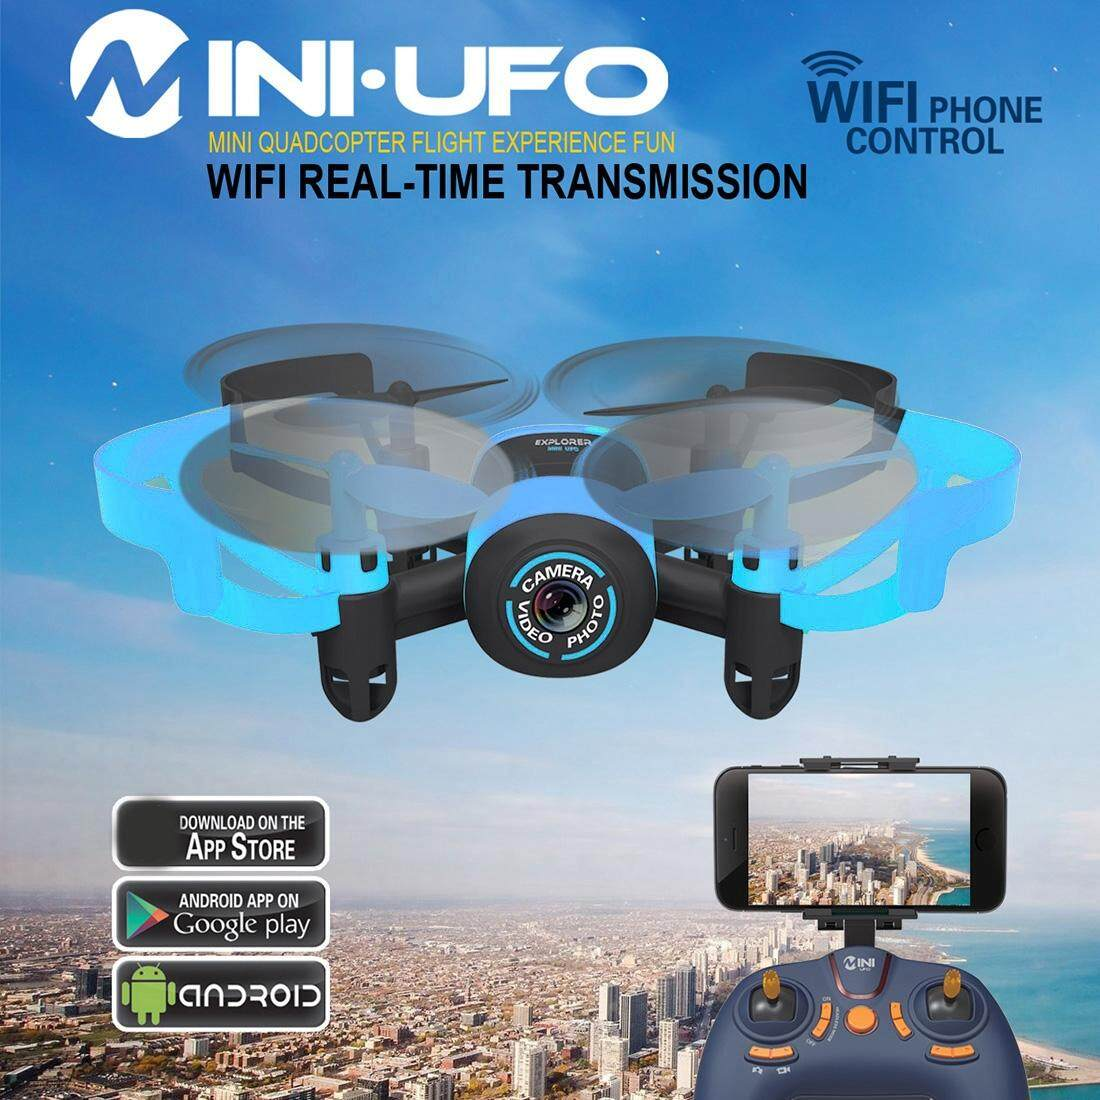 512W Mini 360 Degree Flip 4-Channel 2.4GHz WiFi Real-time FPV Radio Control Quadcopter with 0.3MP Camera & 6-axis Gyro(Blue) Image